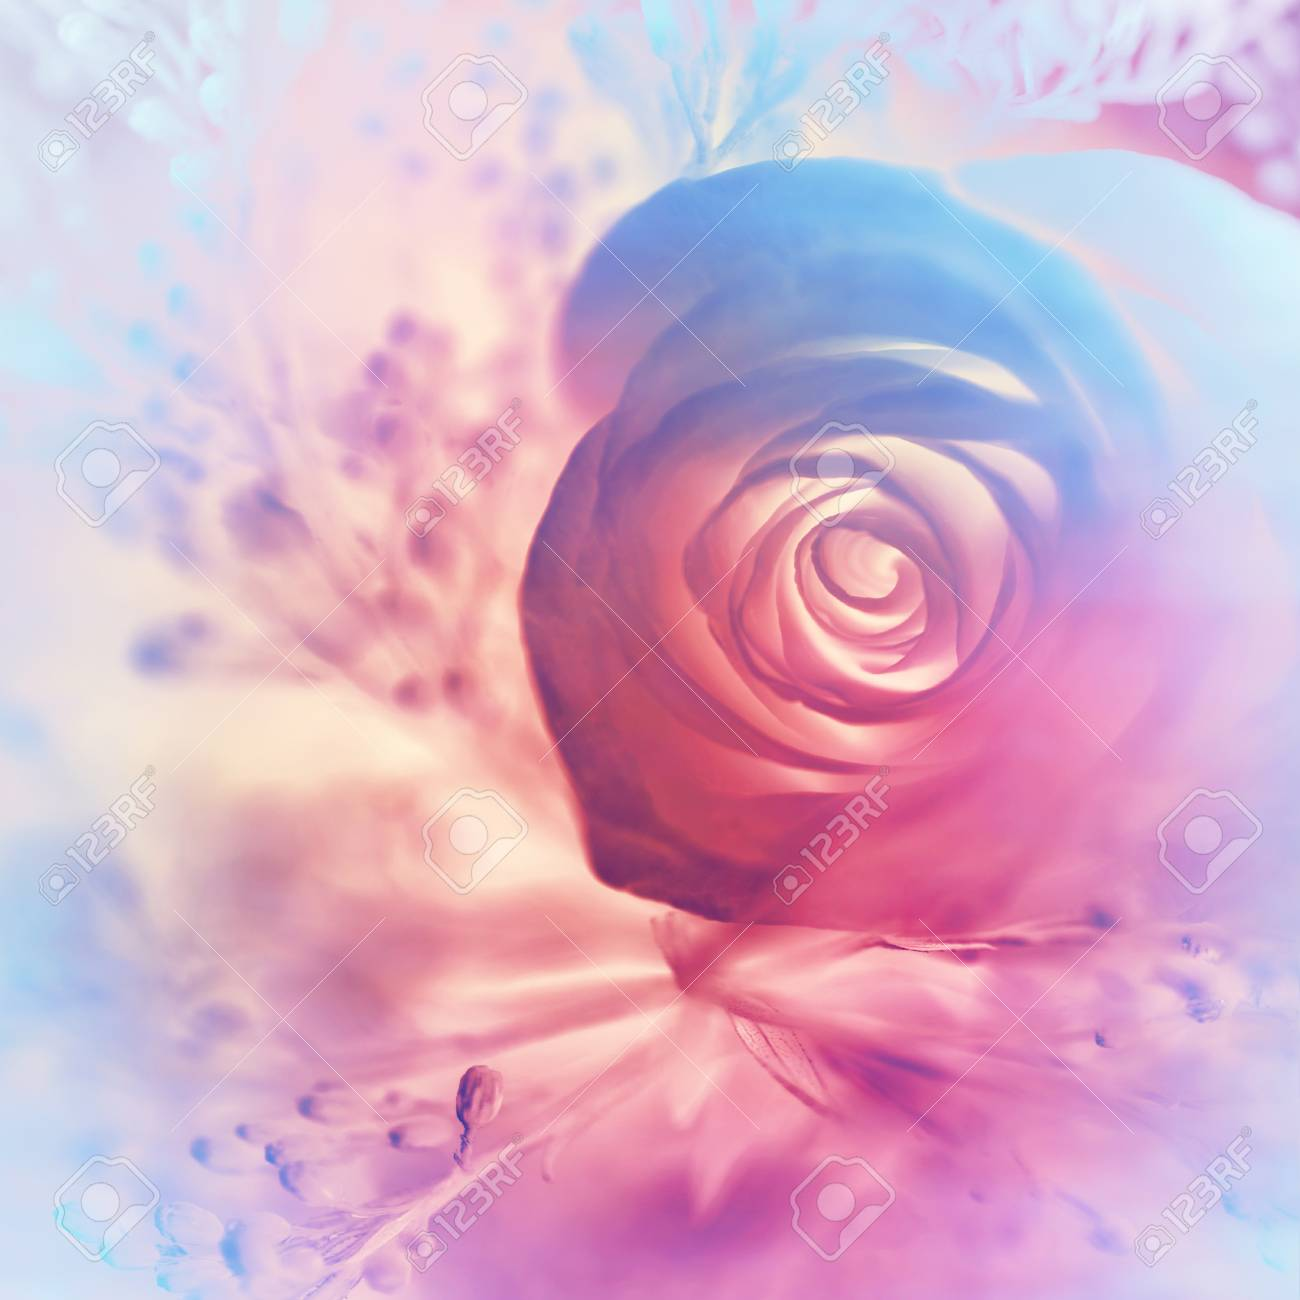 Dreamy Rose Background Abstract Pink And Purple Floral Wallpaper